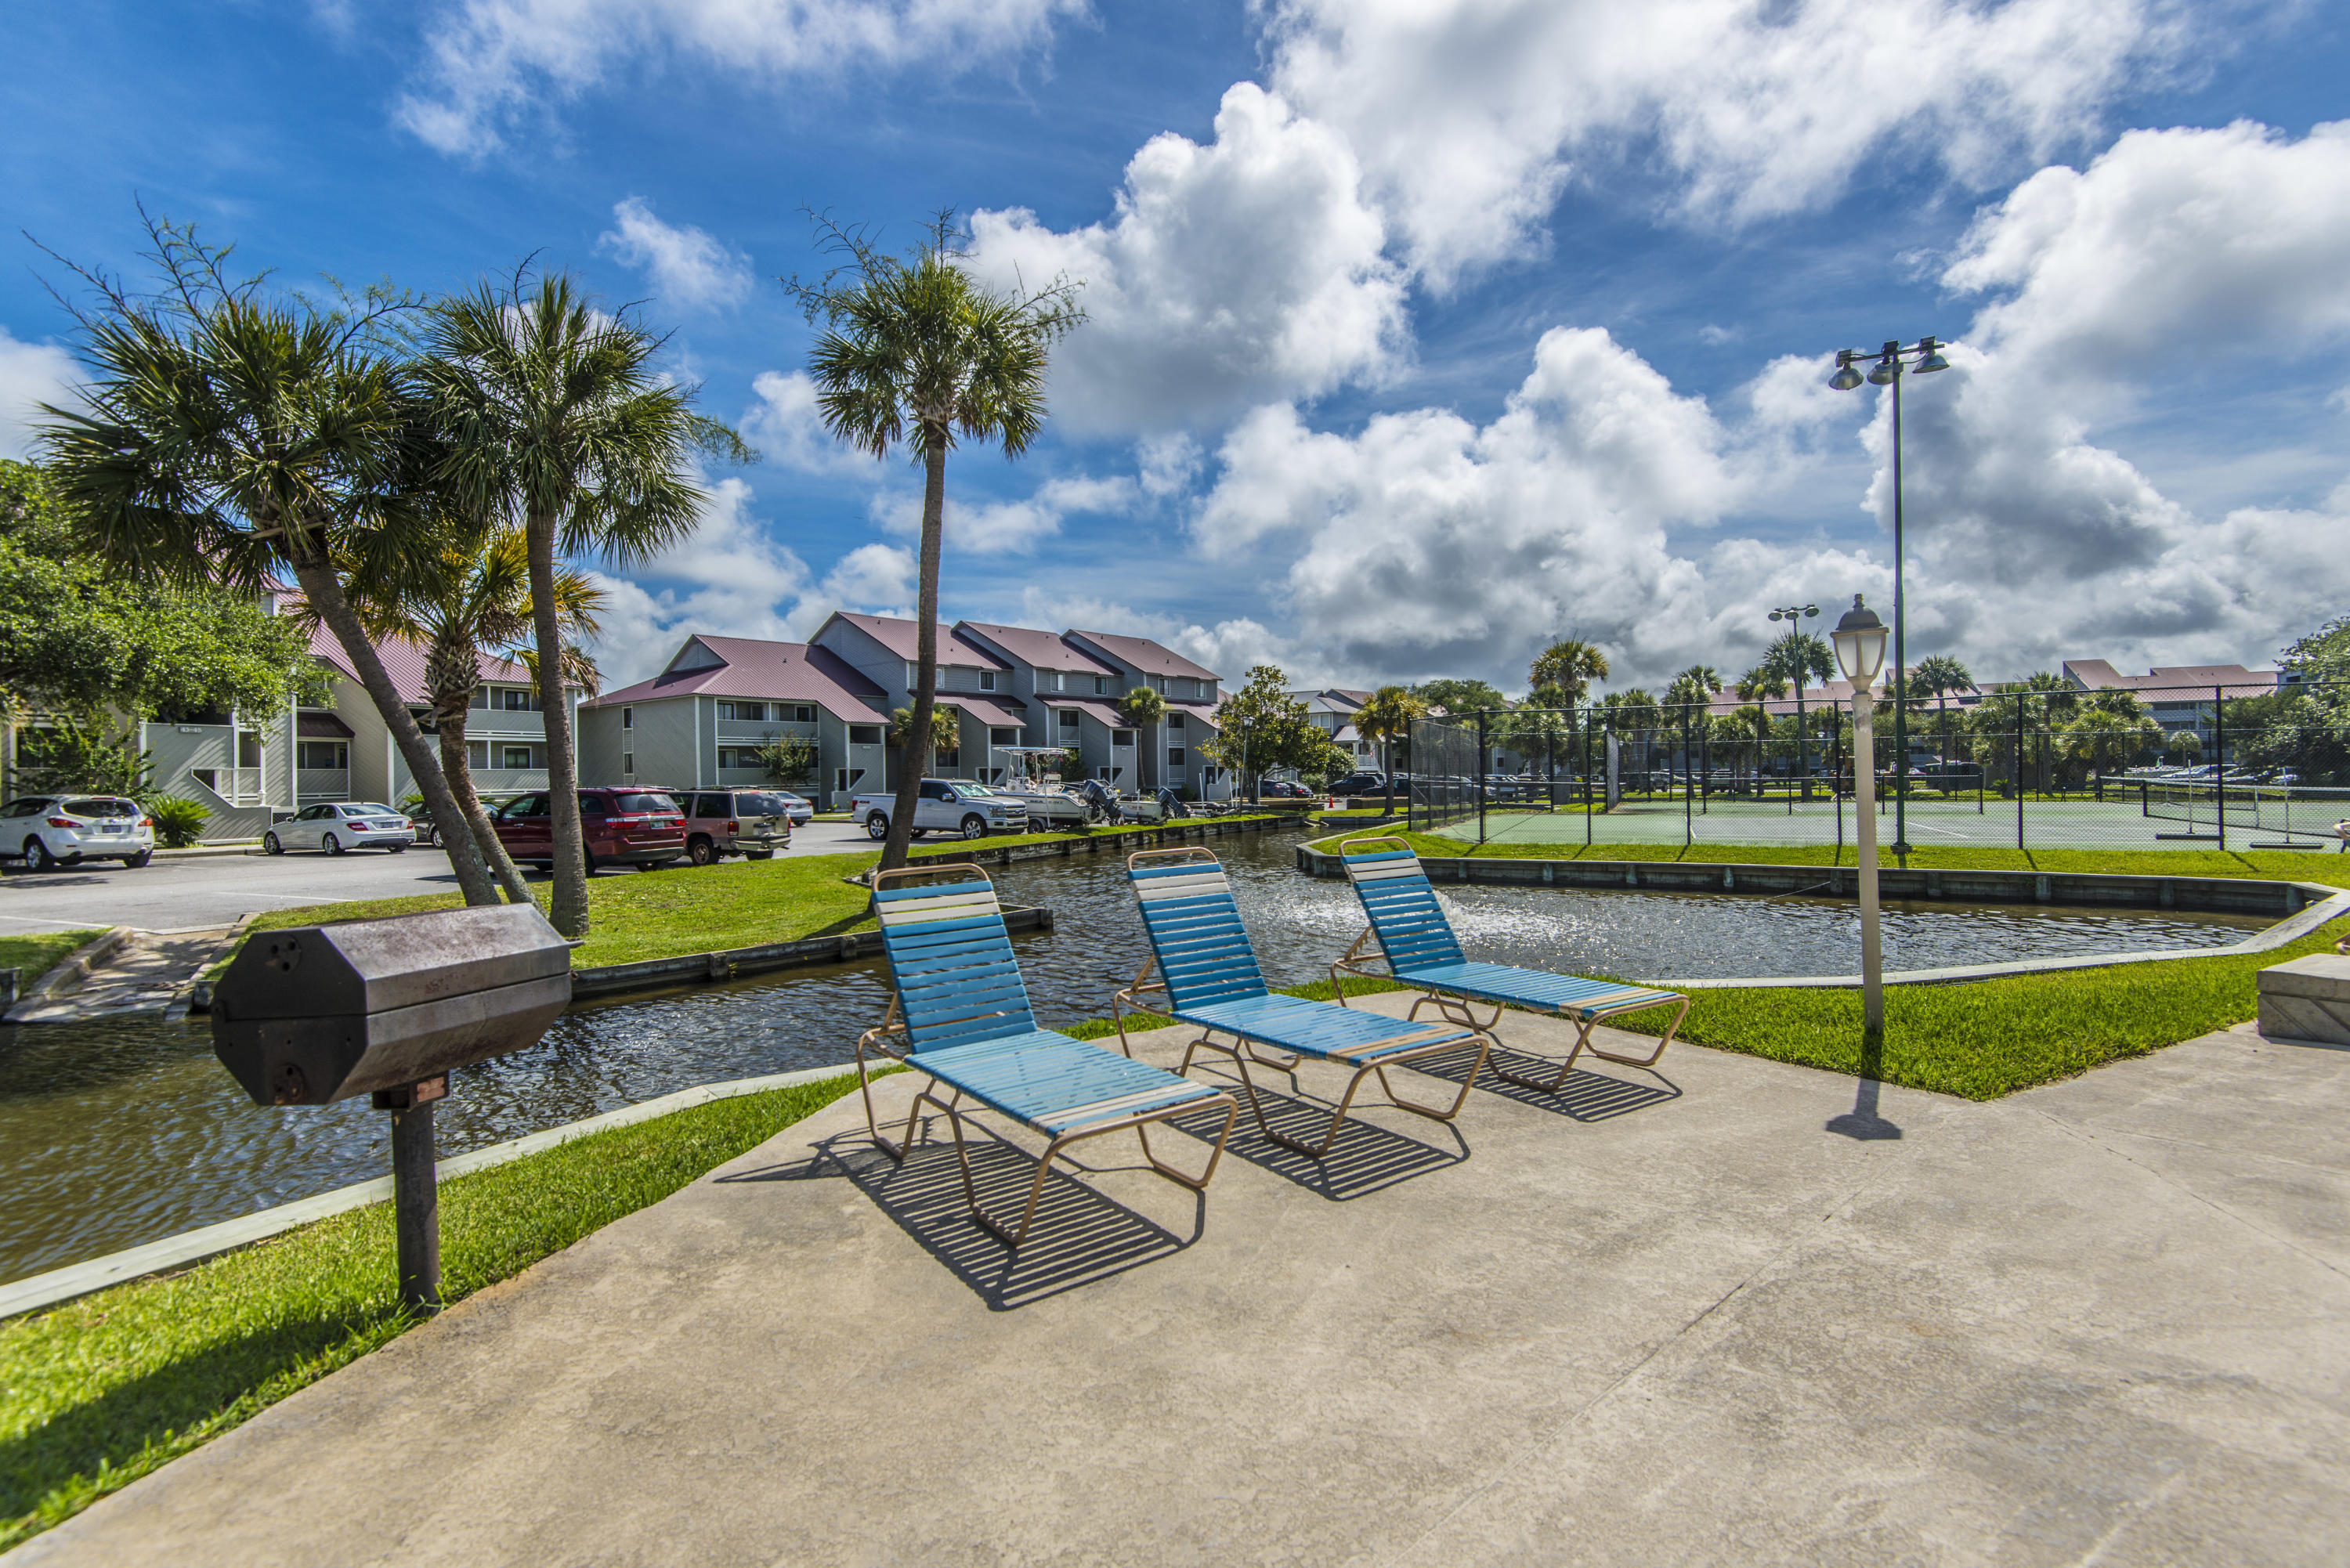 Mariners Cay Homes For Sale - 60 Mariners Cay, Folly Beach, SC - 44